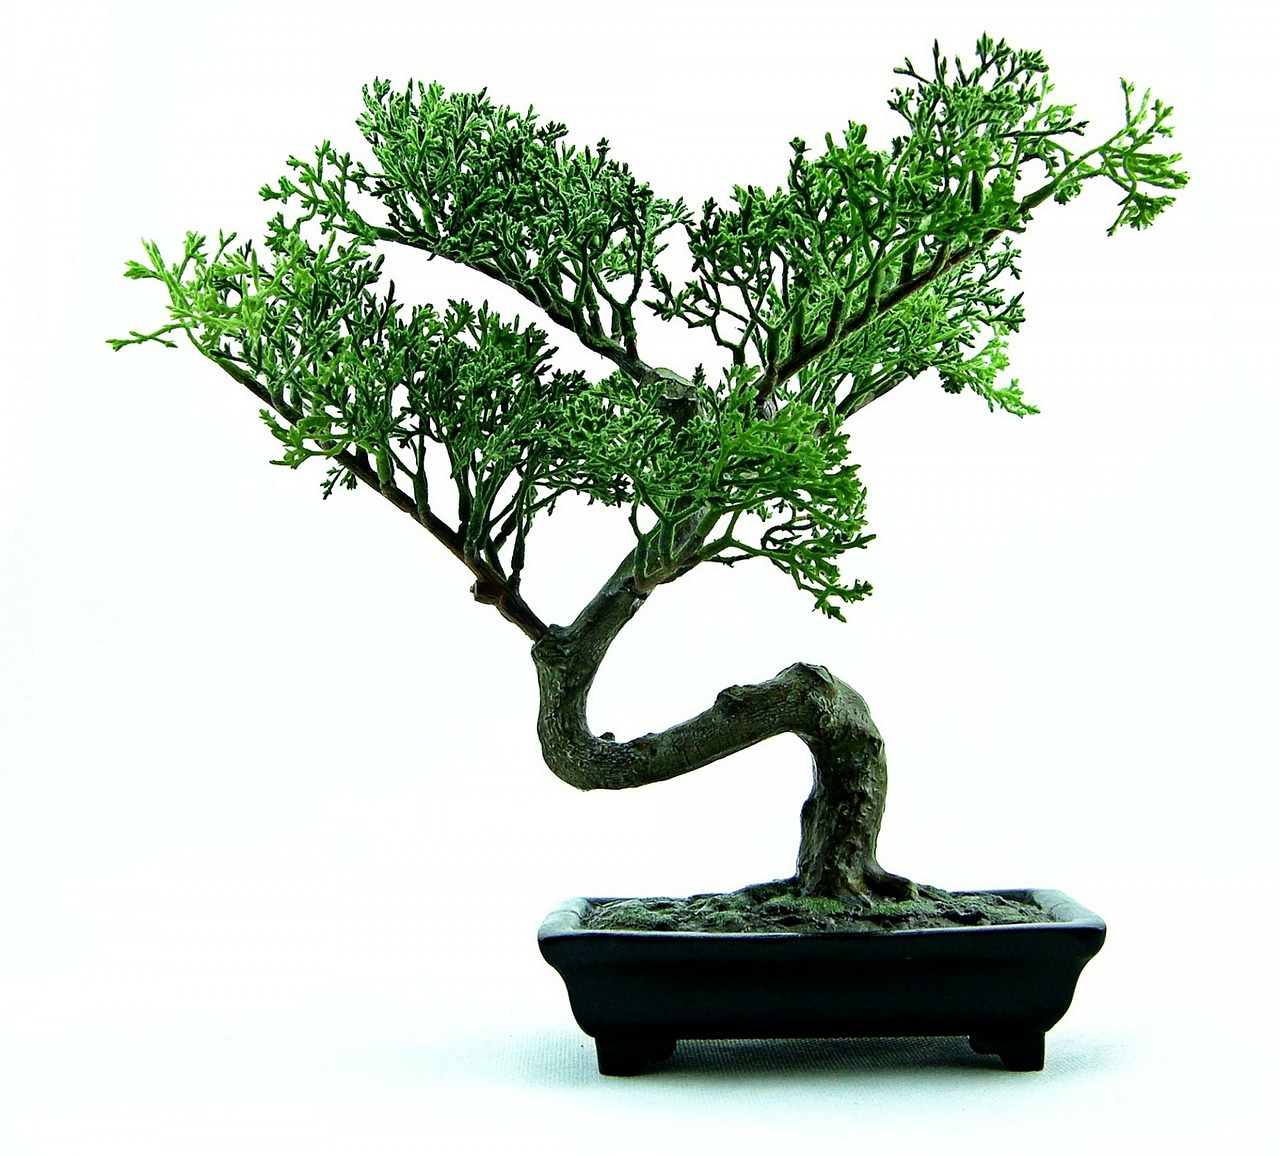 Come Fare un Innesto Laterale sui Bonsai